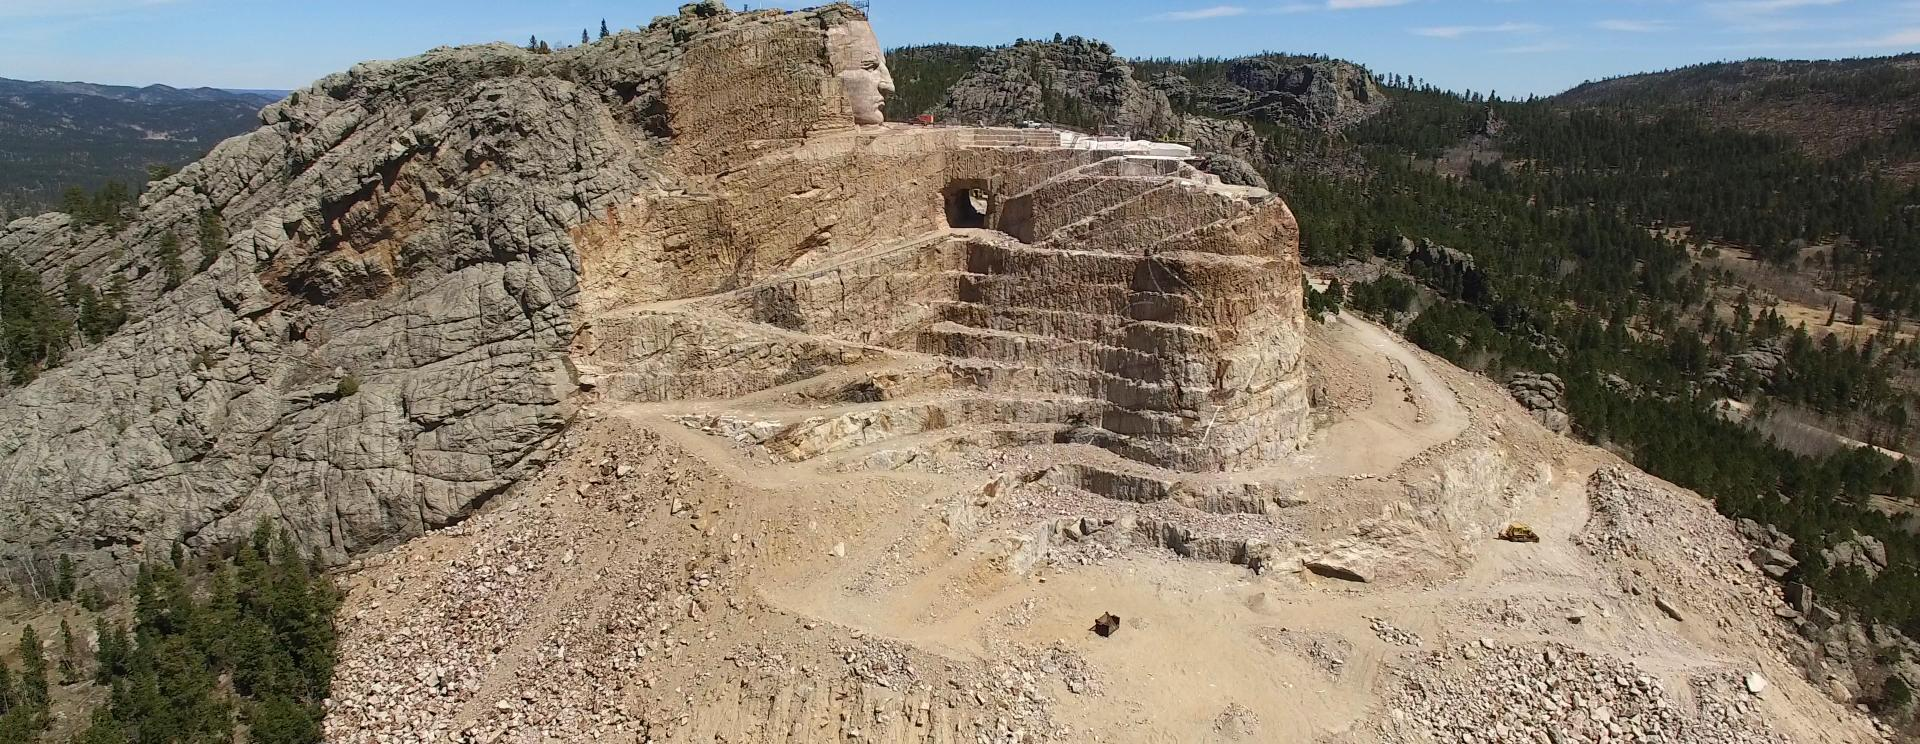 Building a Legacy for Native Americans: The Story of Crazy Horse